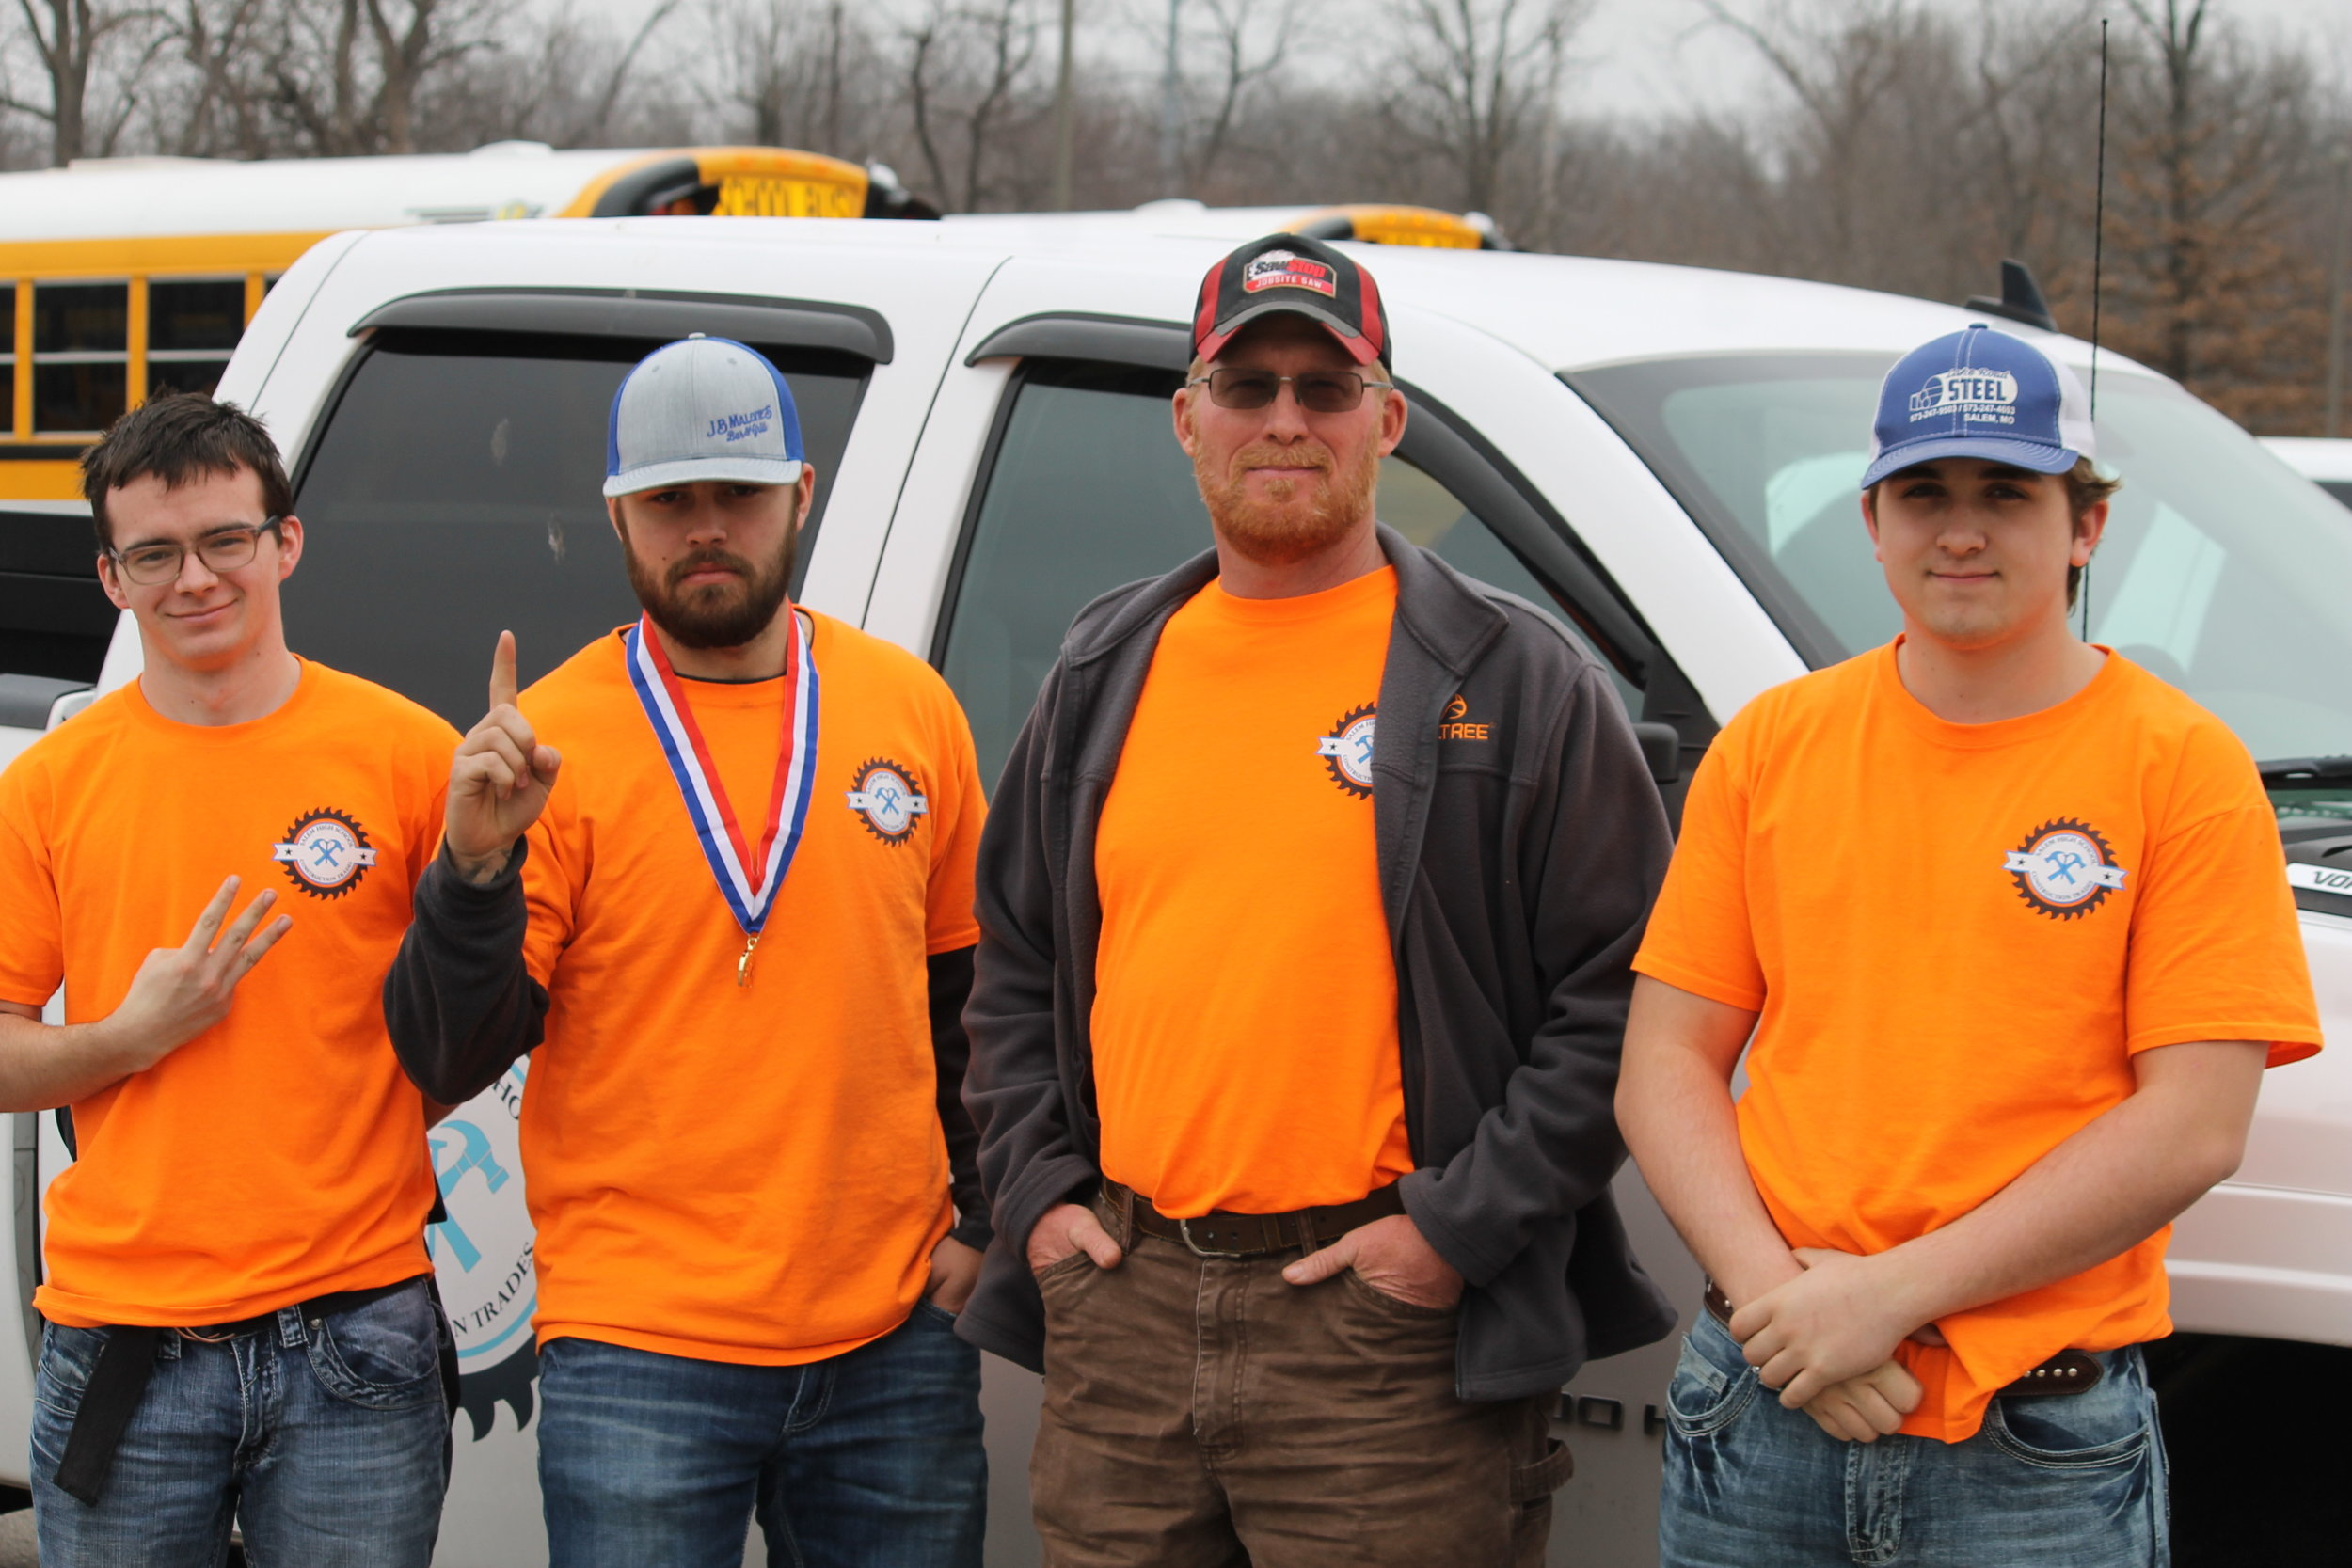 Jay Busbey (far left), a senior in the program, placed third in the written contest. Dell Hoffmeister (second from left), a junior in the program, placed first in the skills contest.